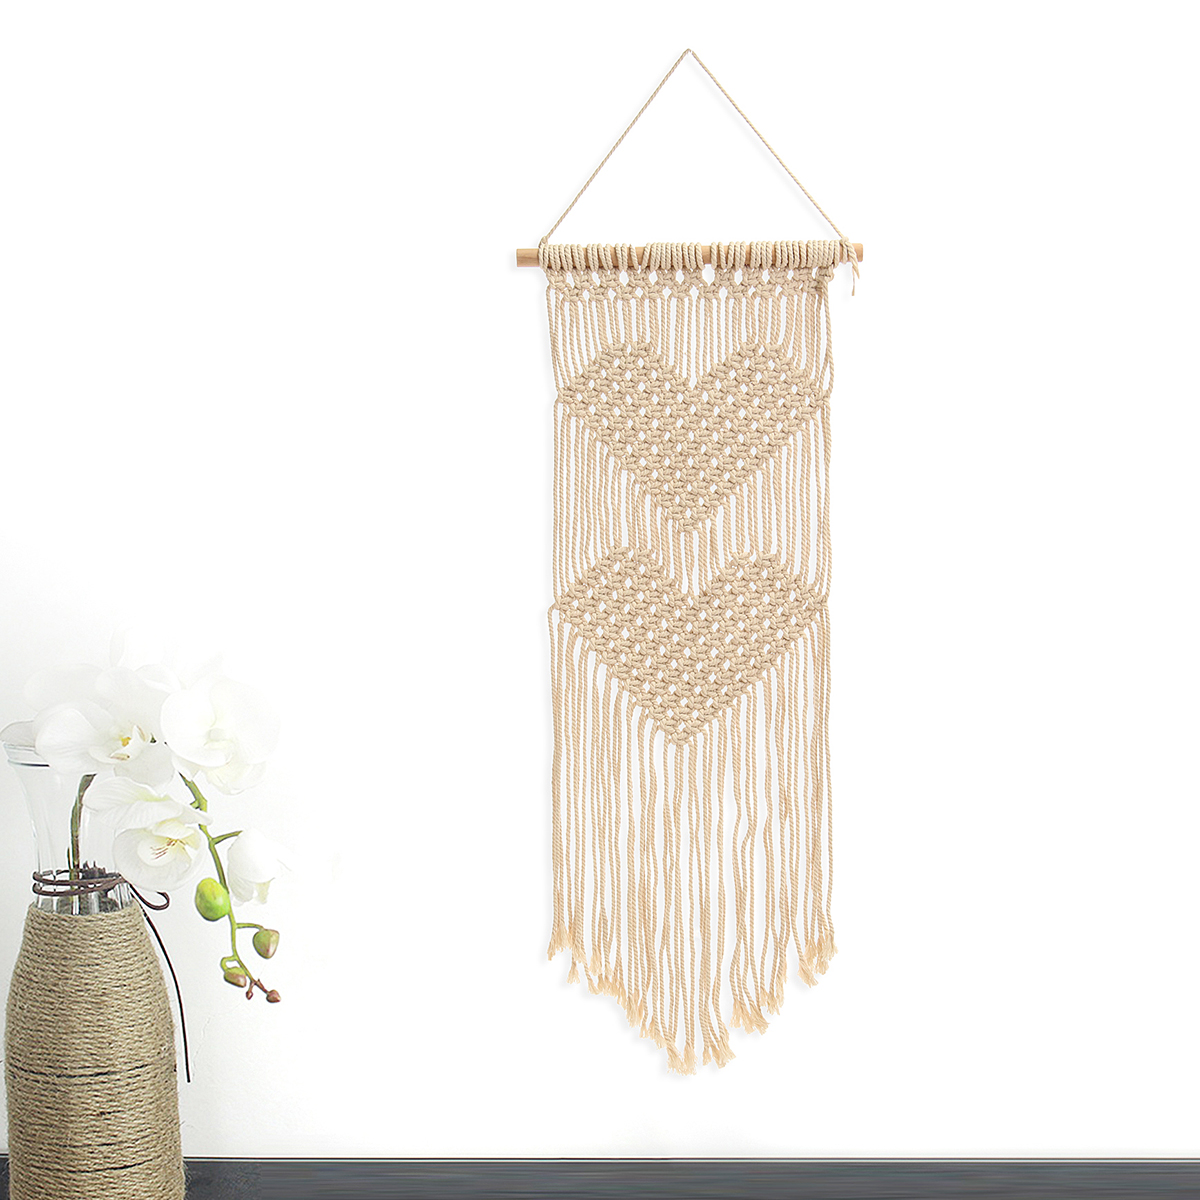 Bohemian Macrame Woven Wall Hanging Two Heart Handmade Tapestry Knitting Art Home Decor Craft Gift by